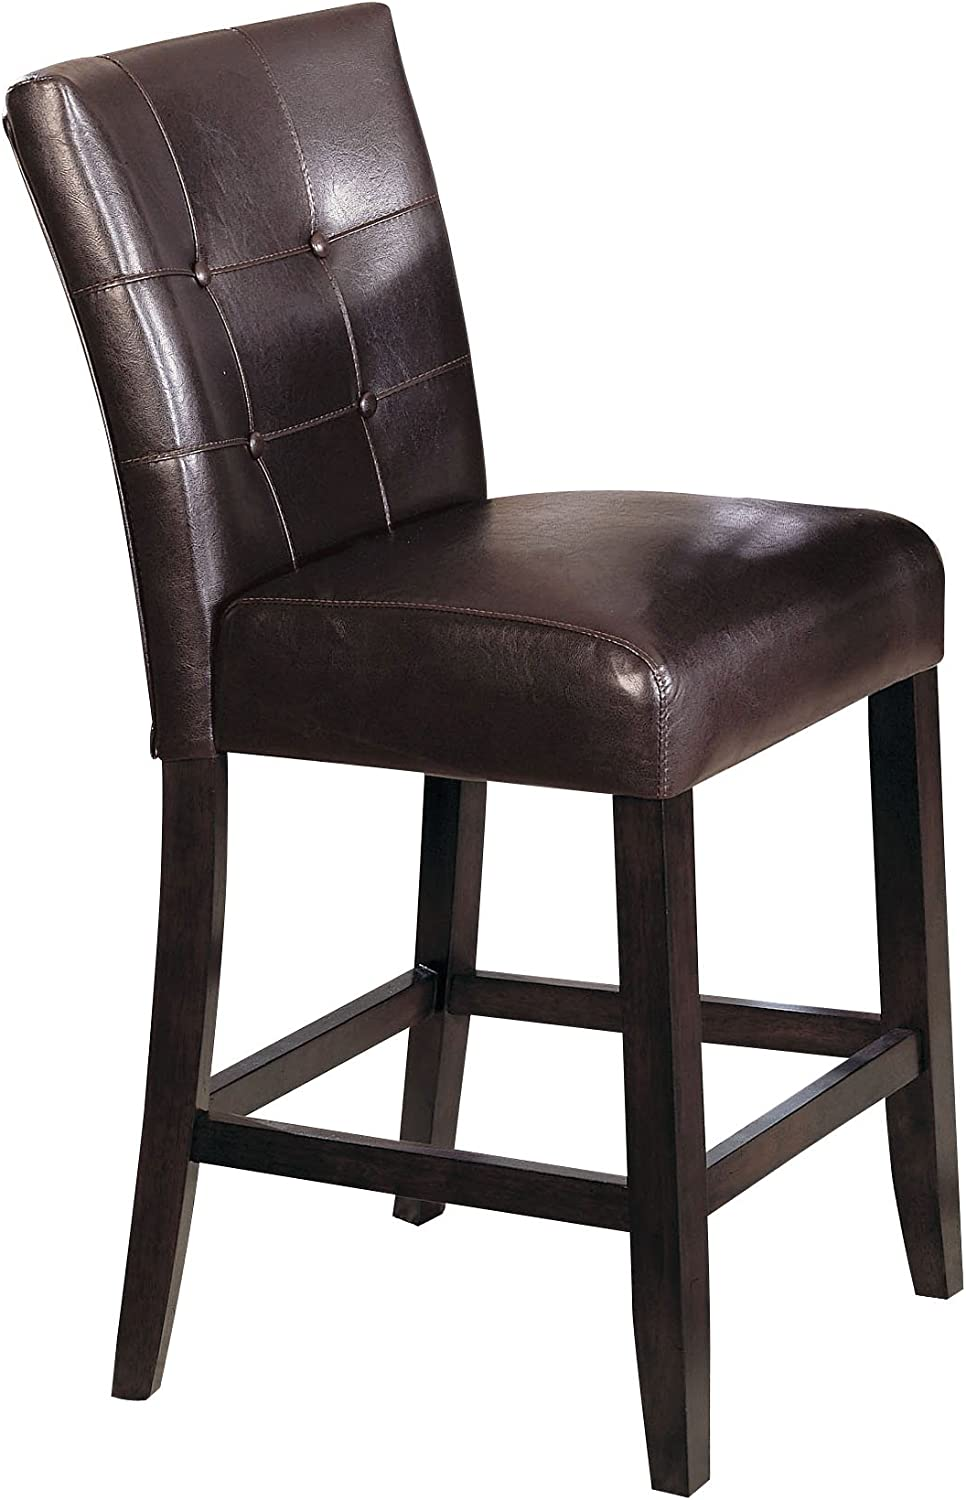 ACME 07055 Set of 2 Counter Height Chair, 24-Inch Height, Brown